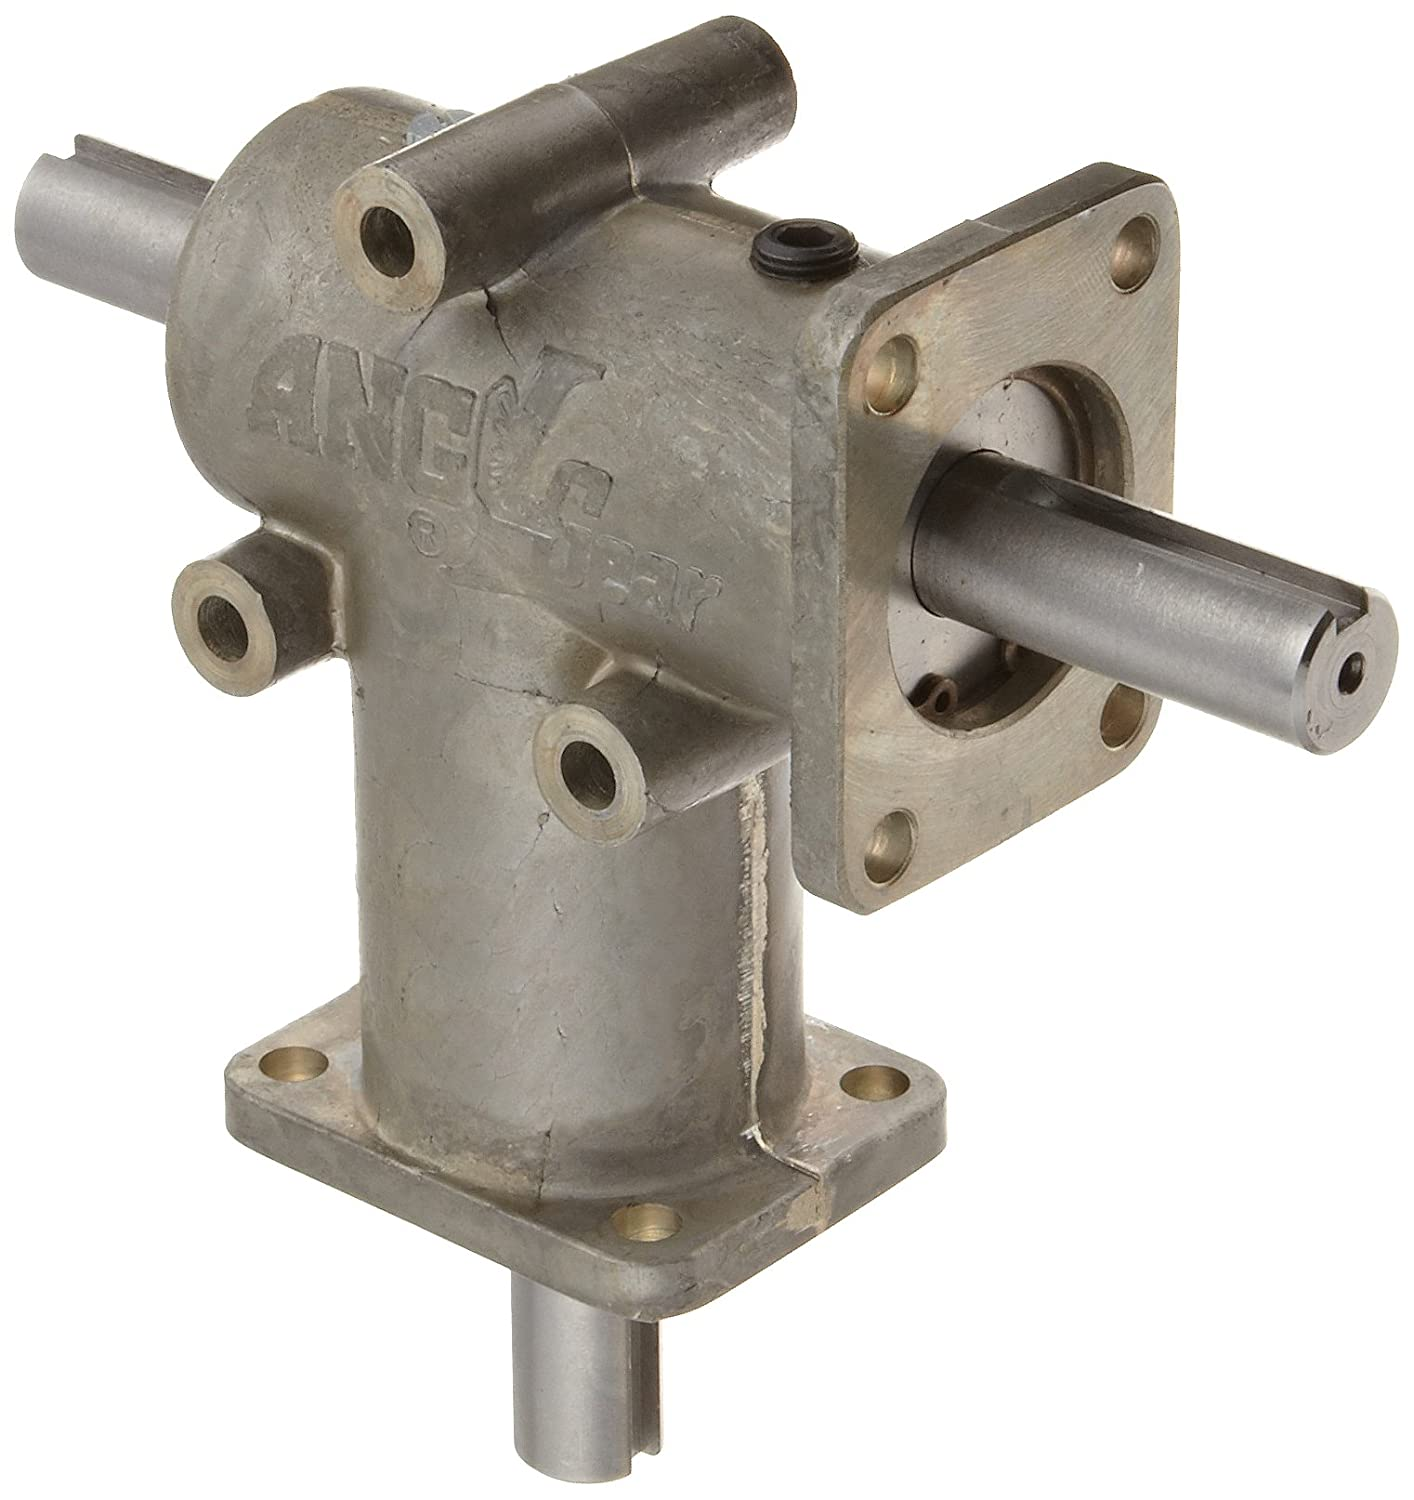 Andantex R3300 Anglgear Right Angle Bevel Gear Drive, Universal Mounting, Two Output Shafts, 2 Flanges, Inch, 5/8' Shaft Diameter, 1:1 ratio, 1.21 Hp at 1750rpm 5/8 Shaft Diameter